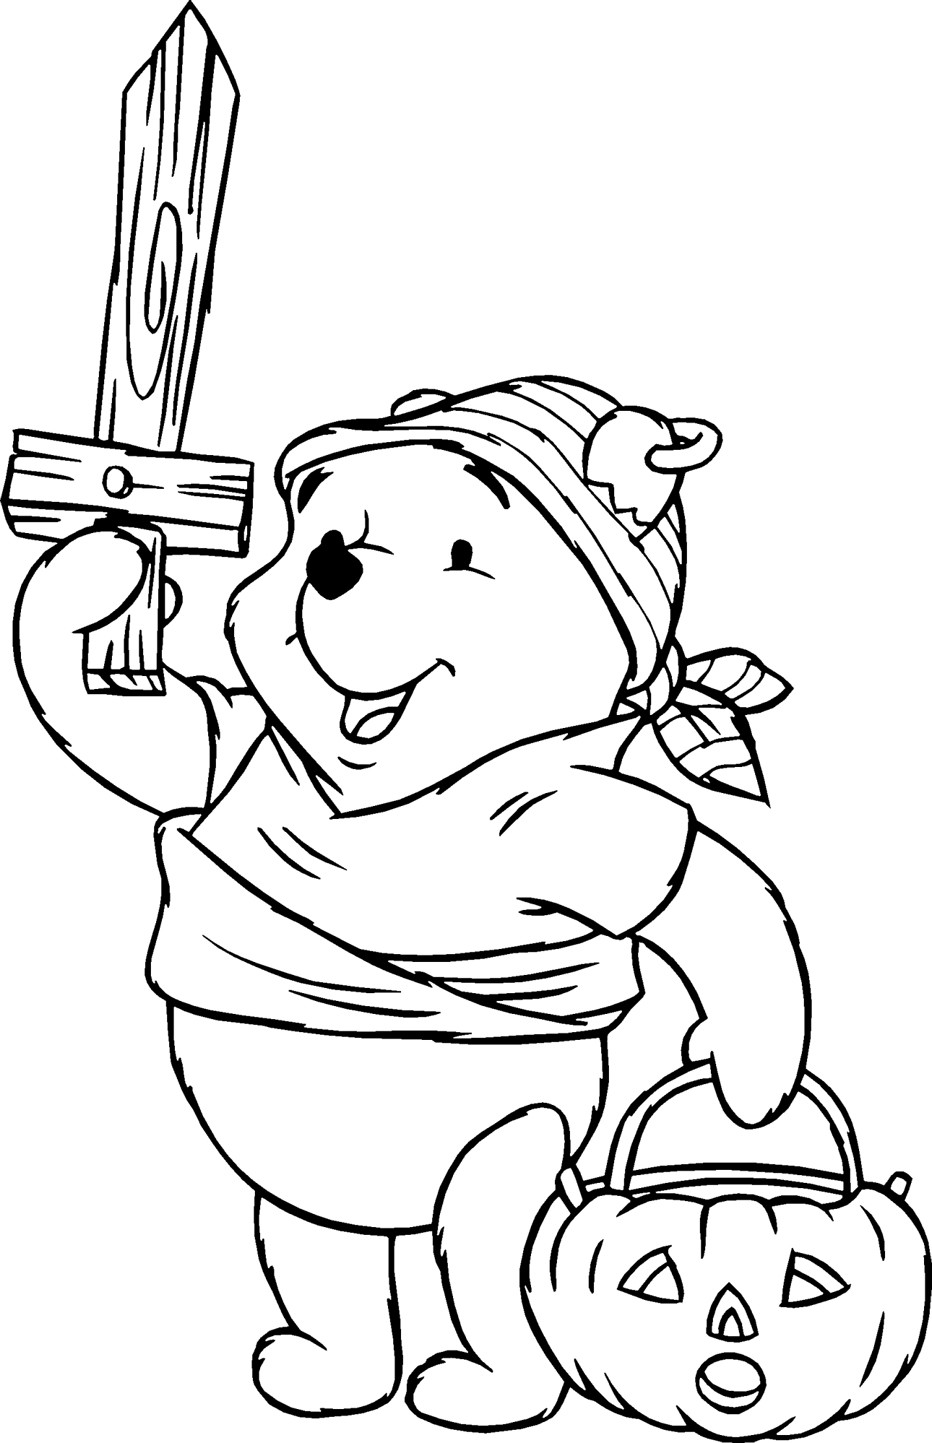 coloring kids pictures 24 free printable halloween coloring pages for kids pictures kids coloring